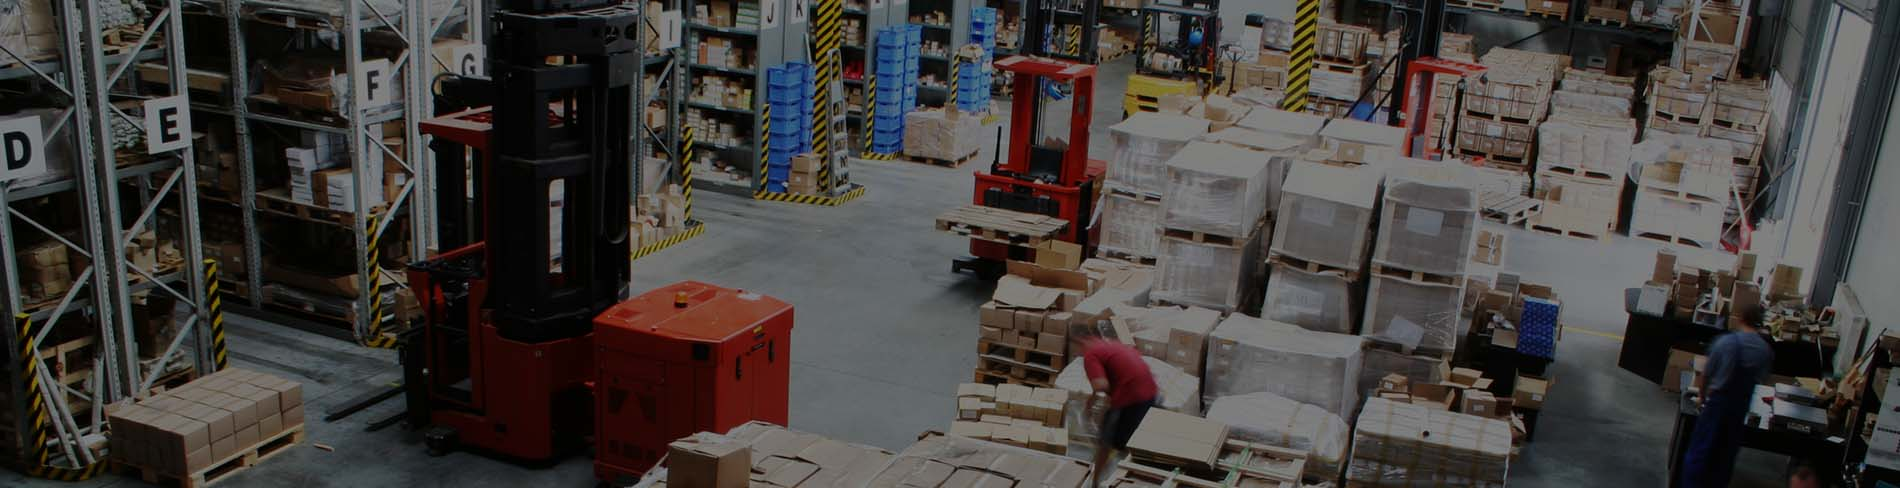 Warehouse Material Handling